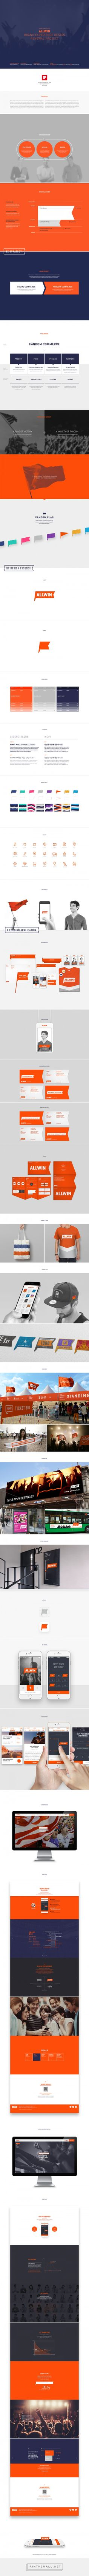 Group Saving Action ALLWIN Brand Experience Design on Behance - created via https://pinthemall.net